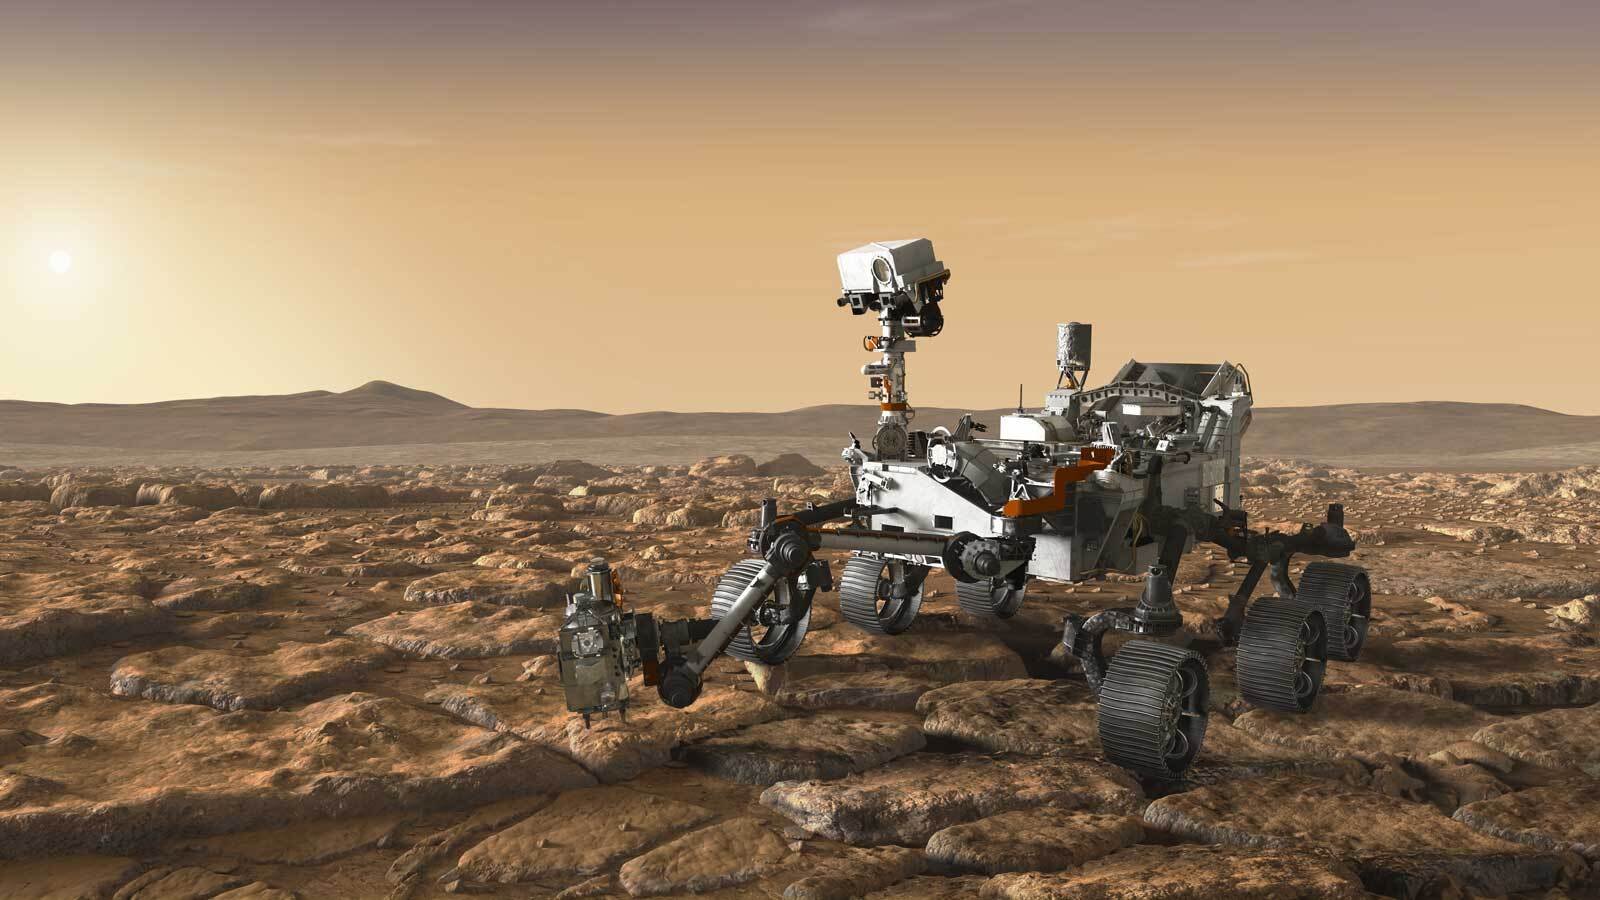 This artist's concept depicts NASA's Mars 2020 rover exploring Mars.